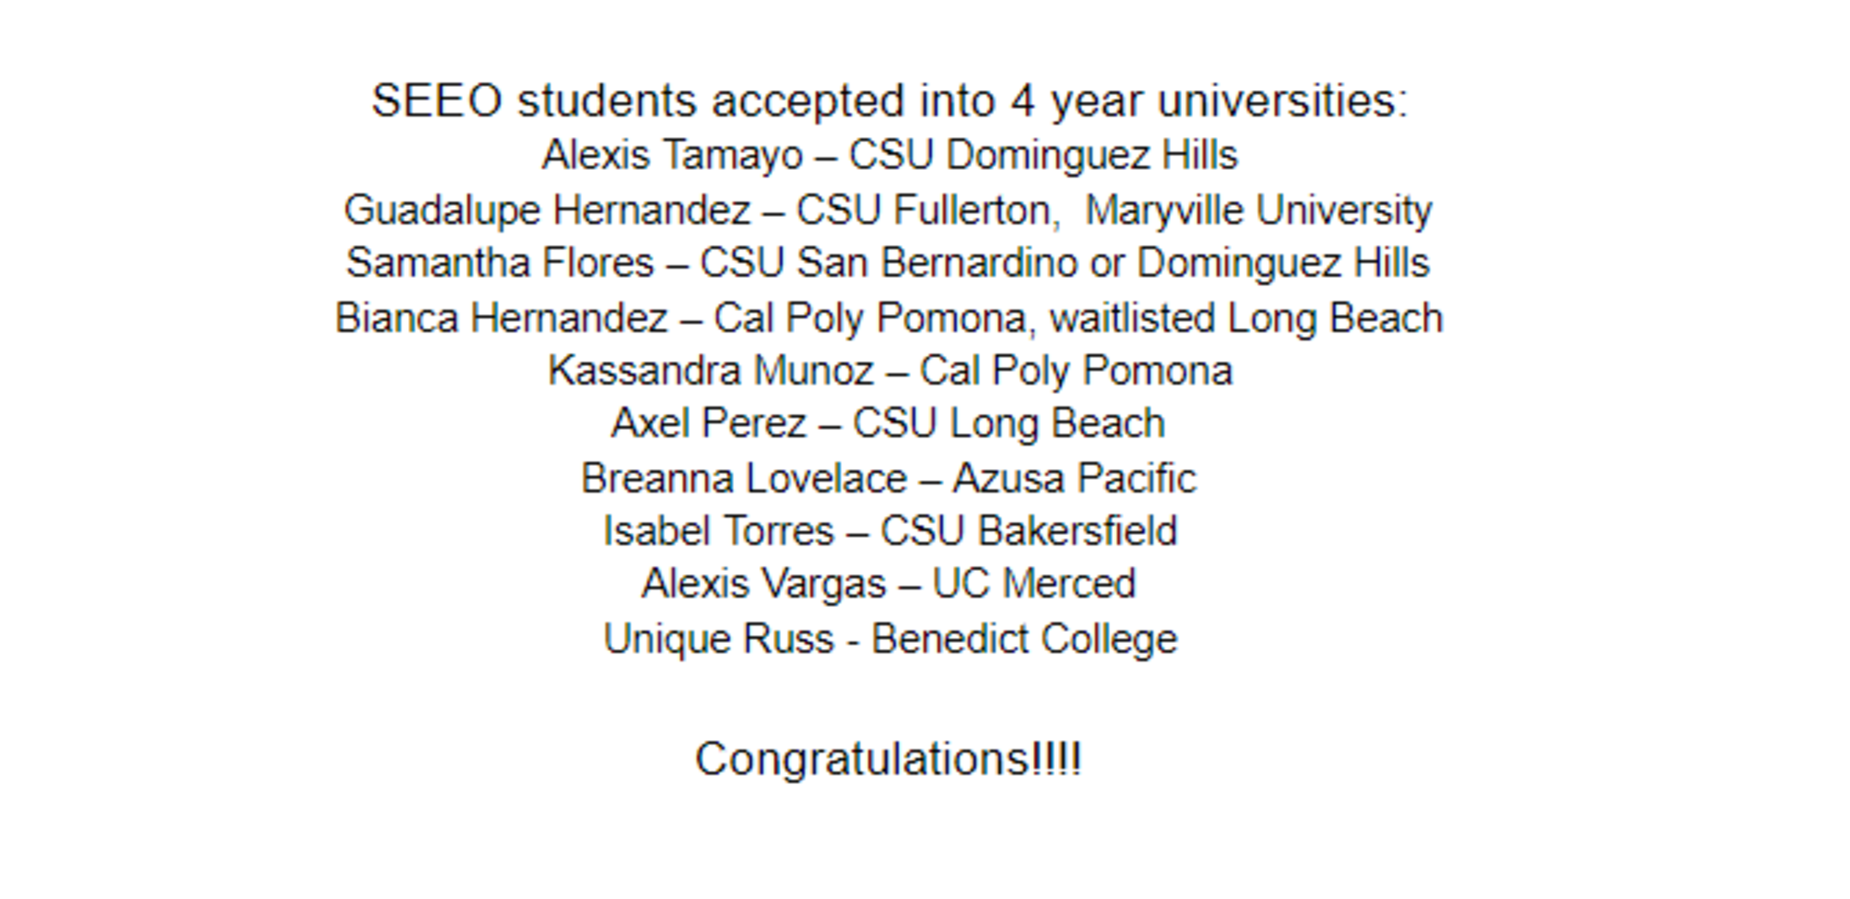 List of SEEO students who were accepted into universities